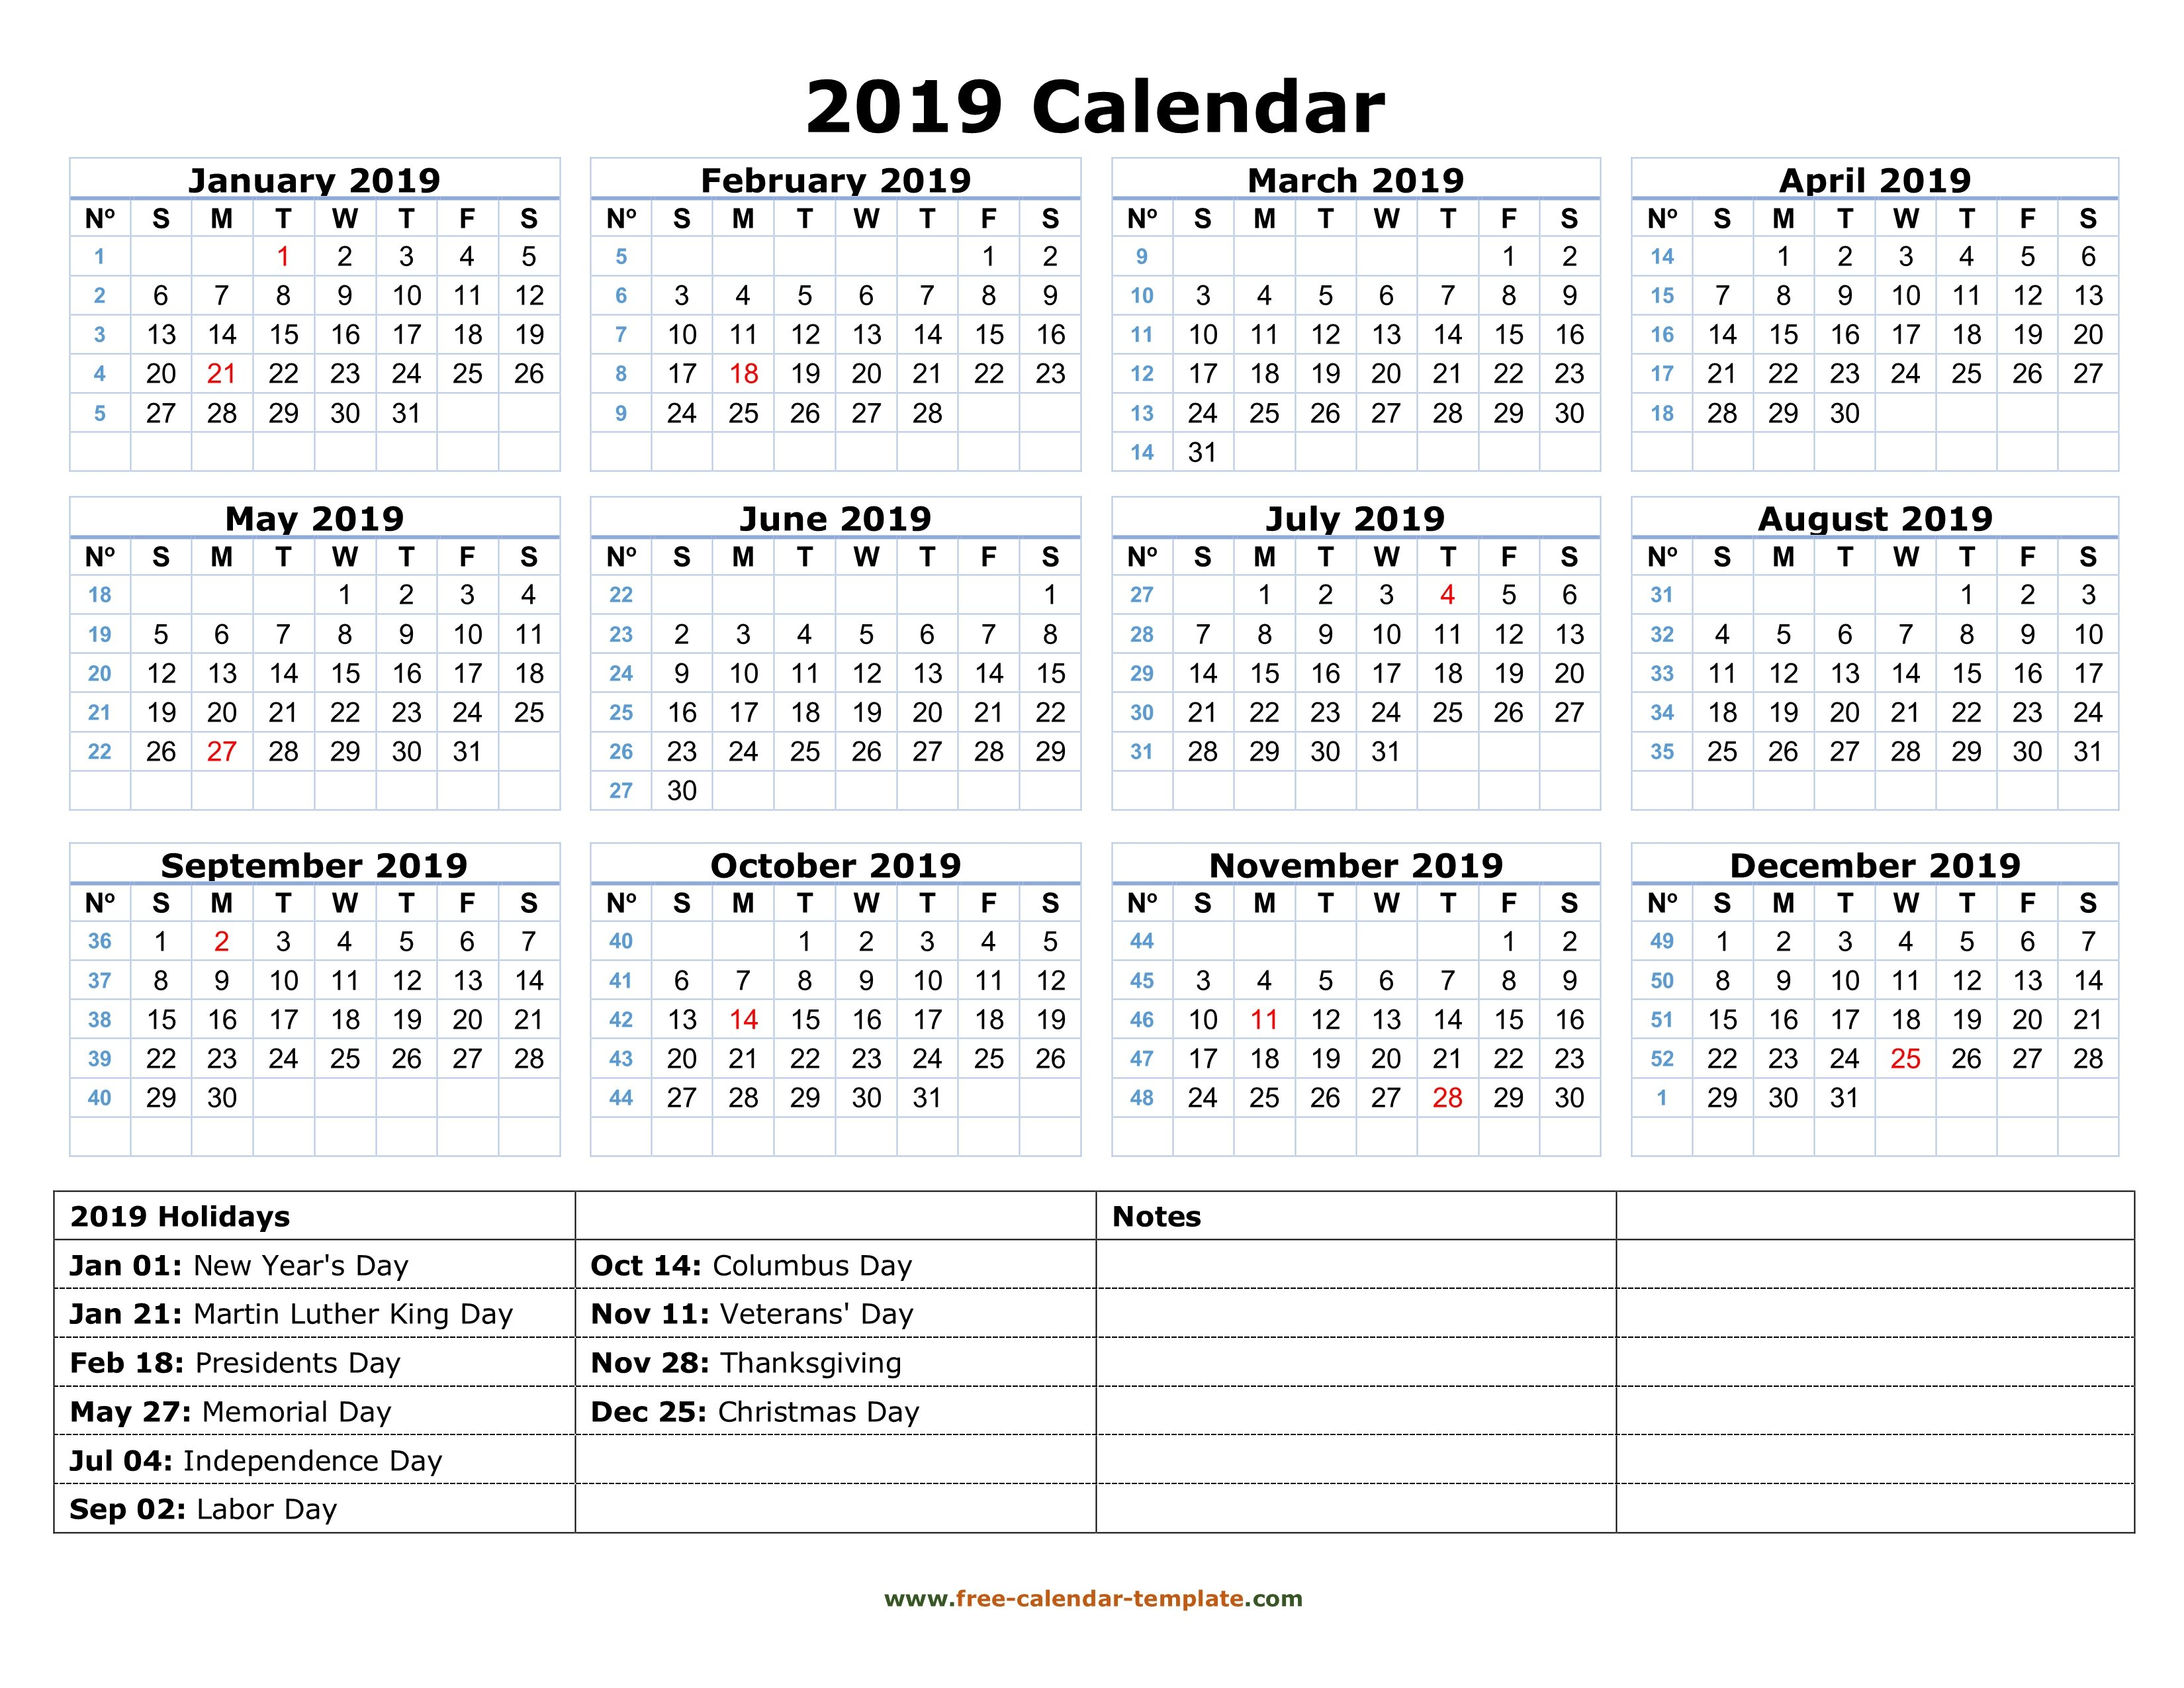 Printable Yearly Calendar 2019 With Us Holidays | Free-Calendar Calendar 2019 View